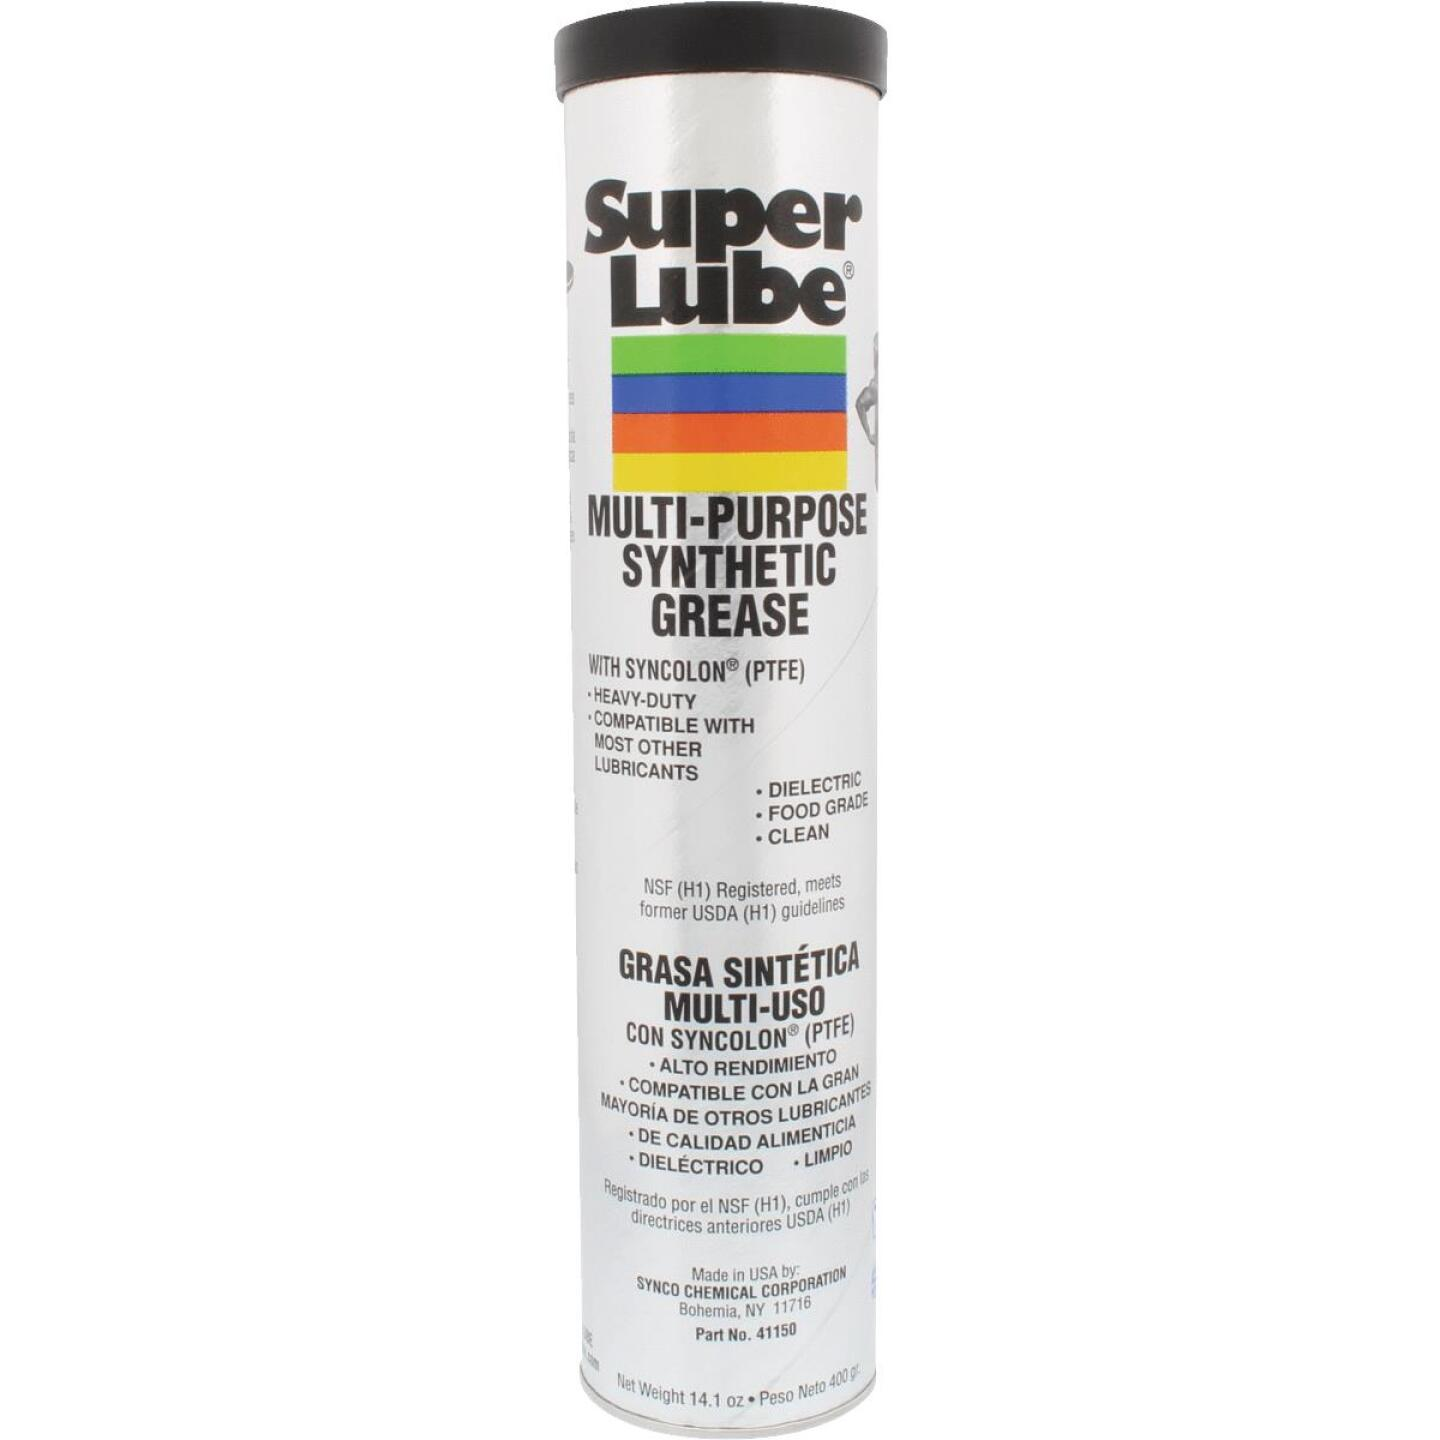 Super Lube 14 Oz. Cartridge Synthetic Multi-Purpose Grease Image 1